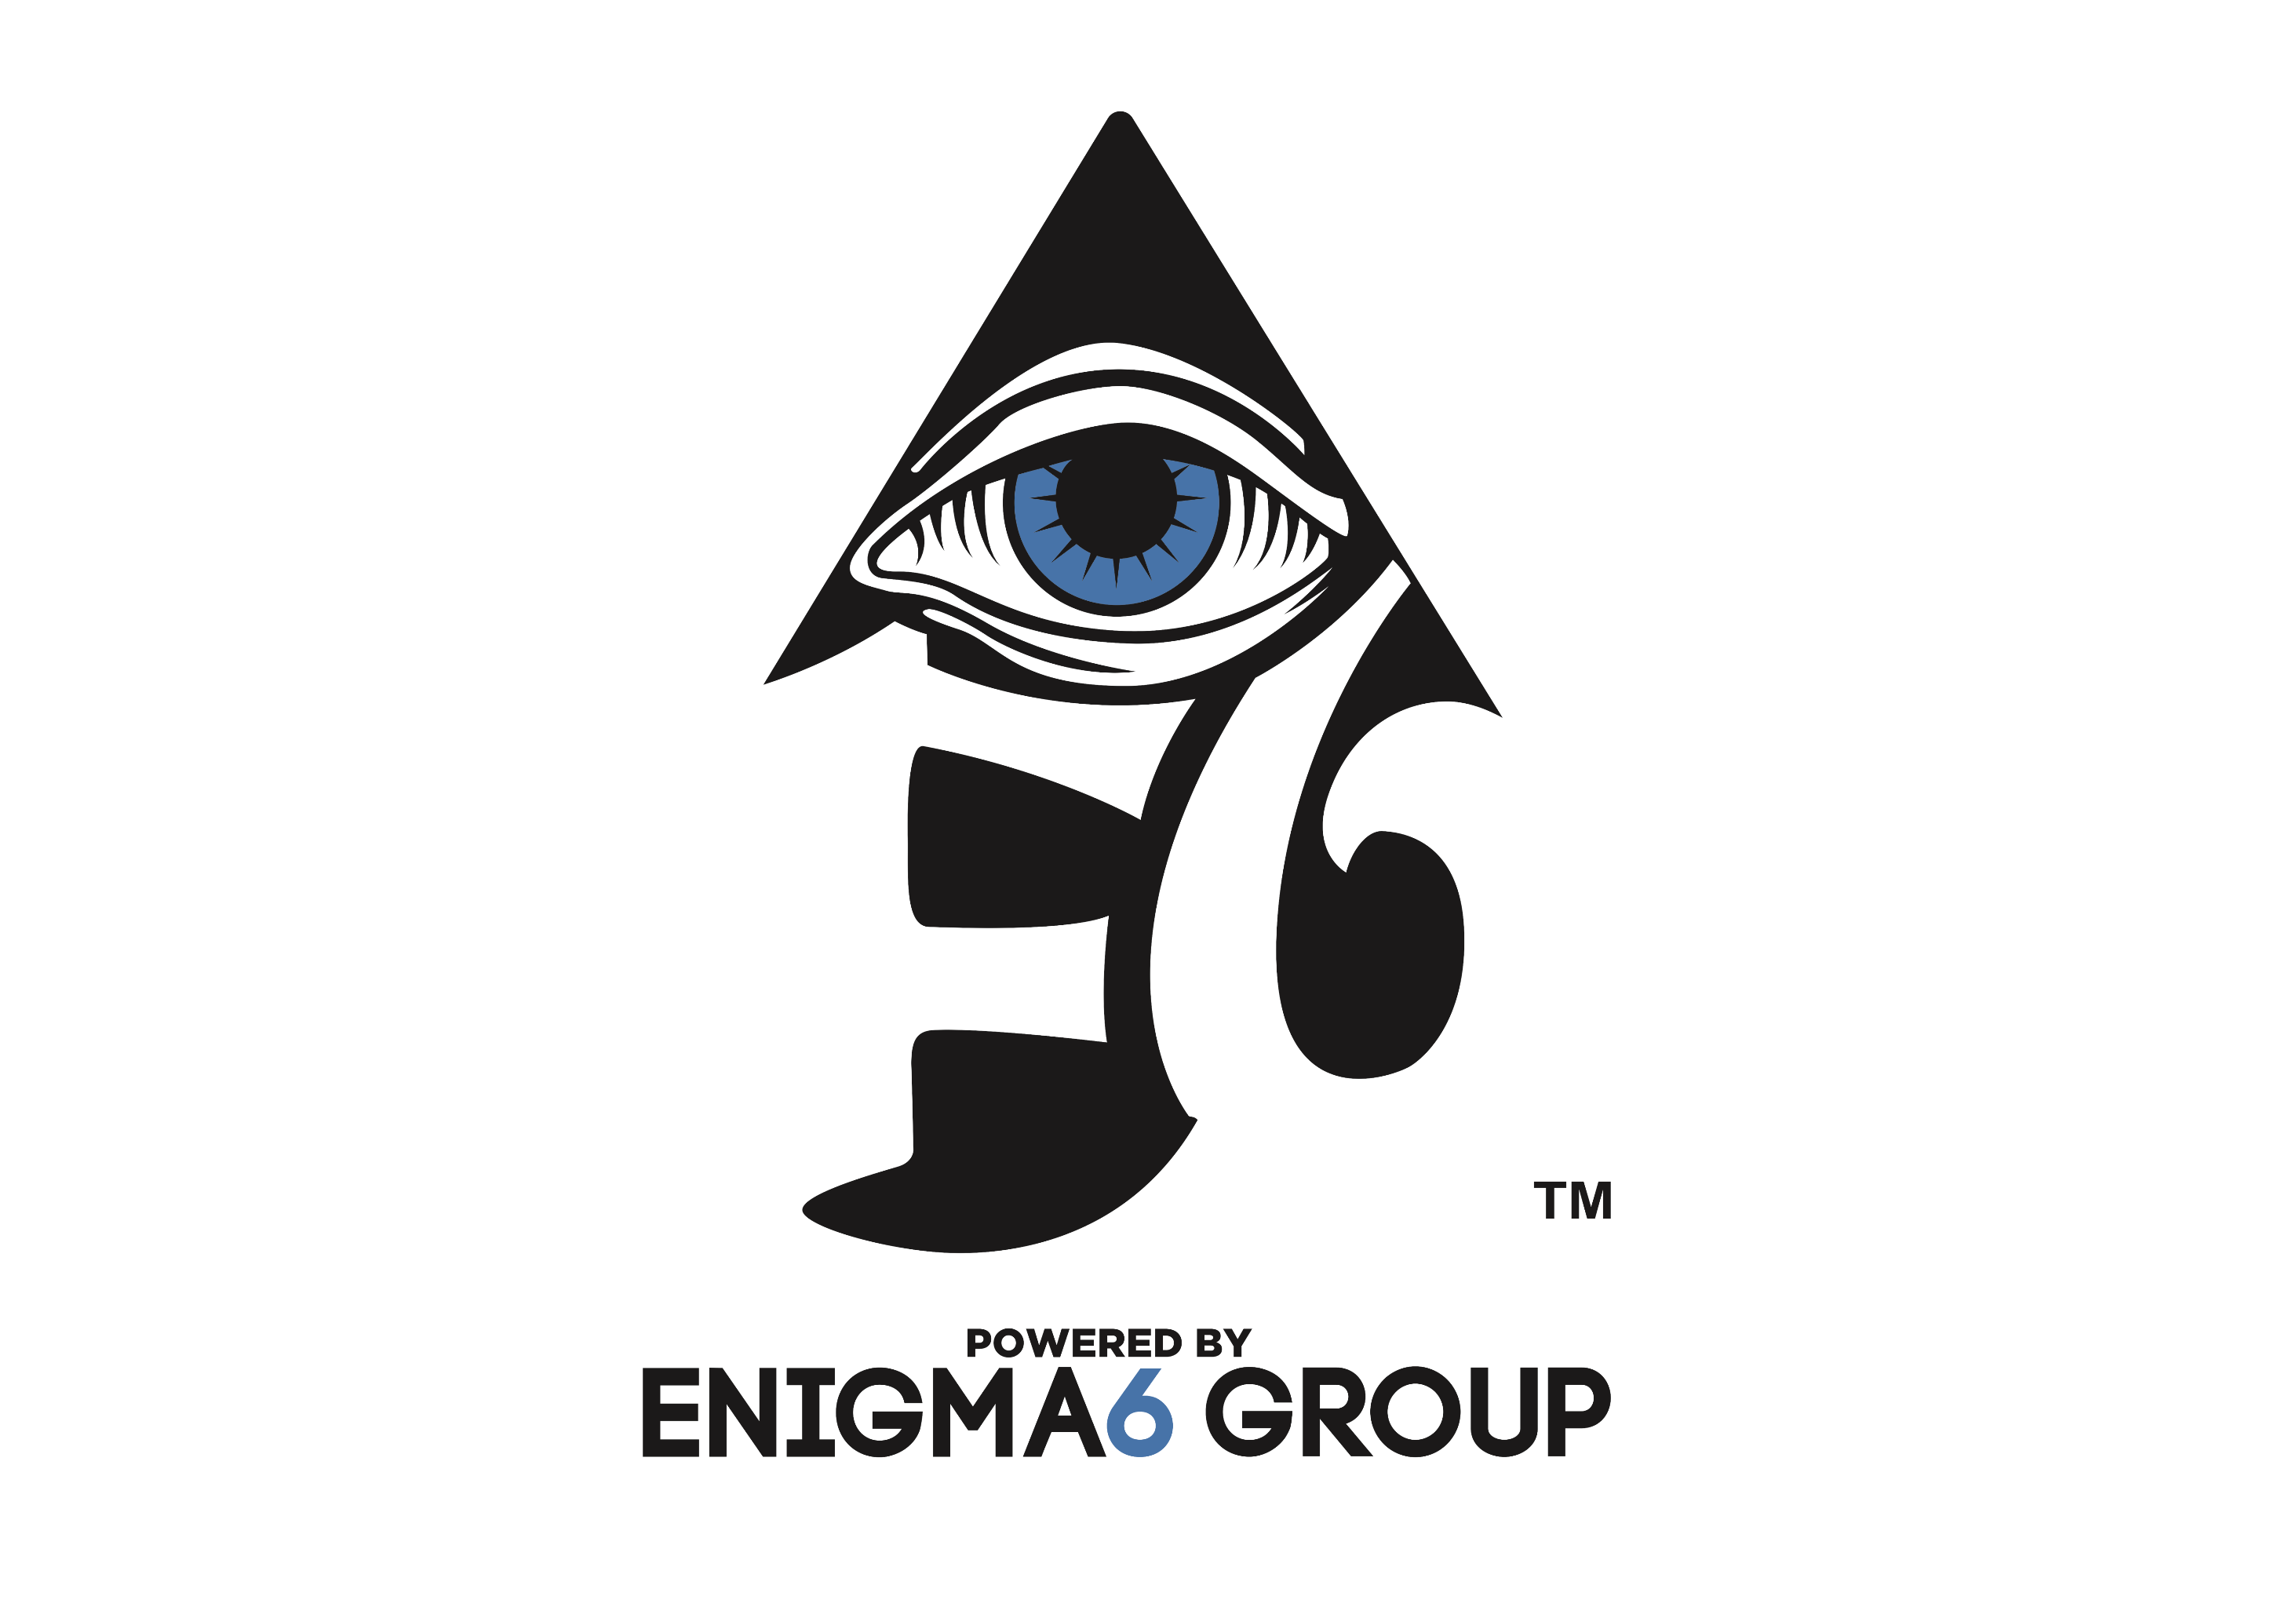 ENIGMA6 GROUP, LLC Professional Esports Organization